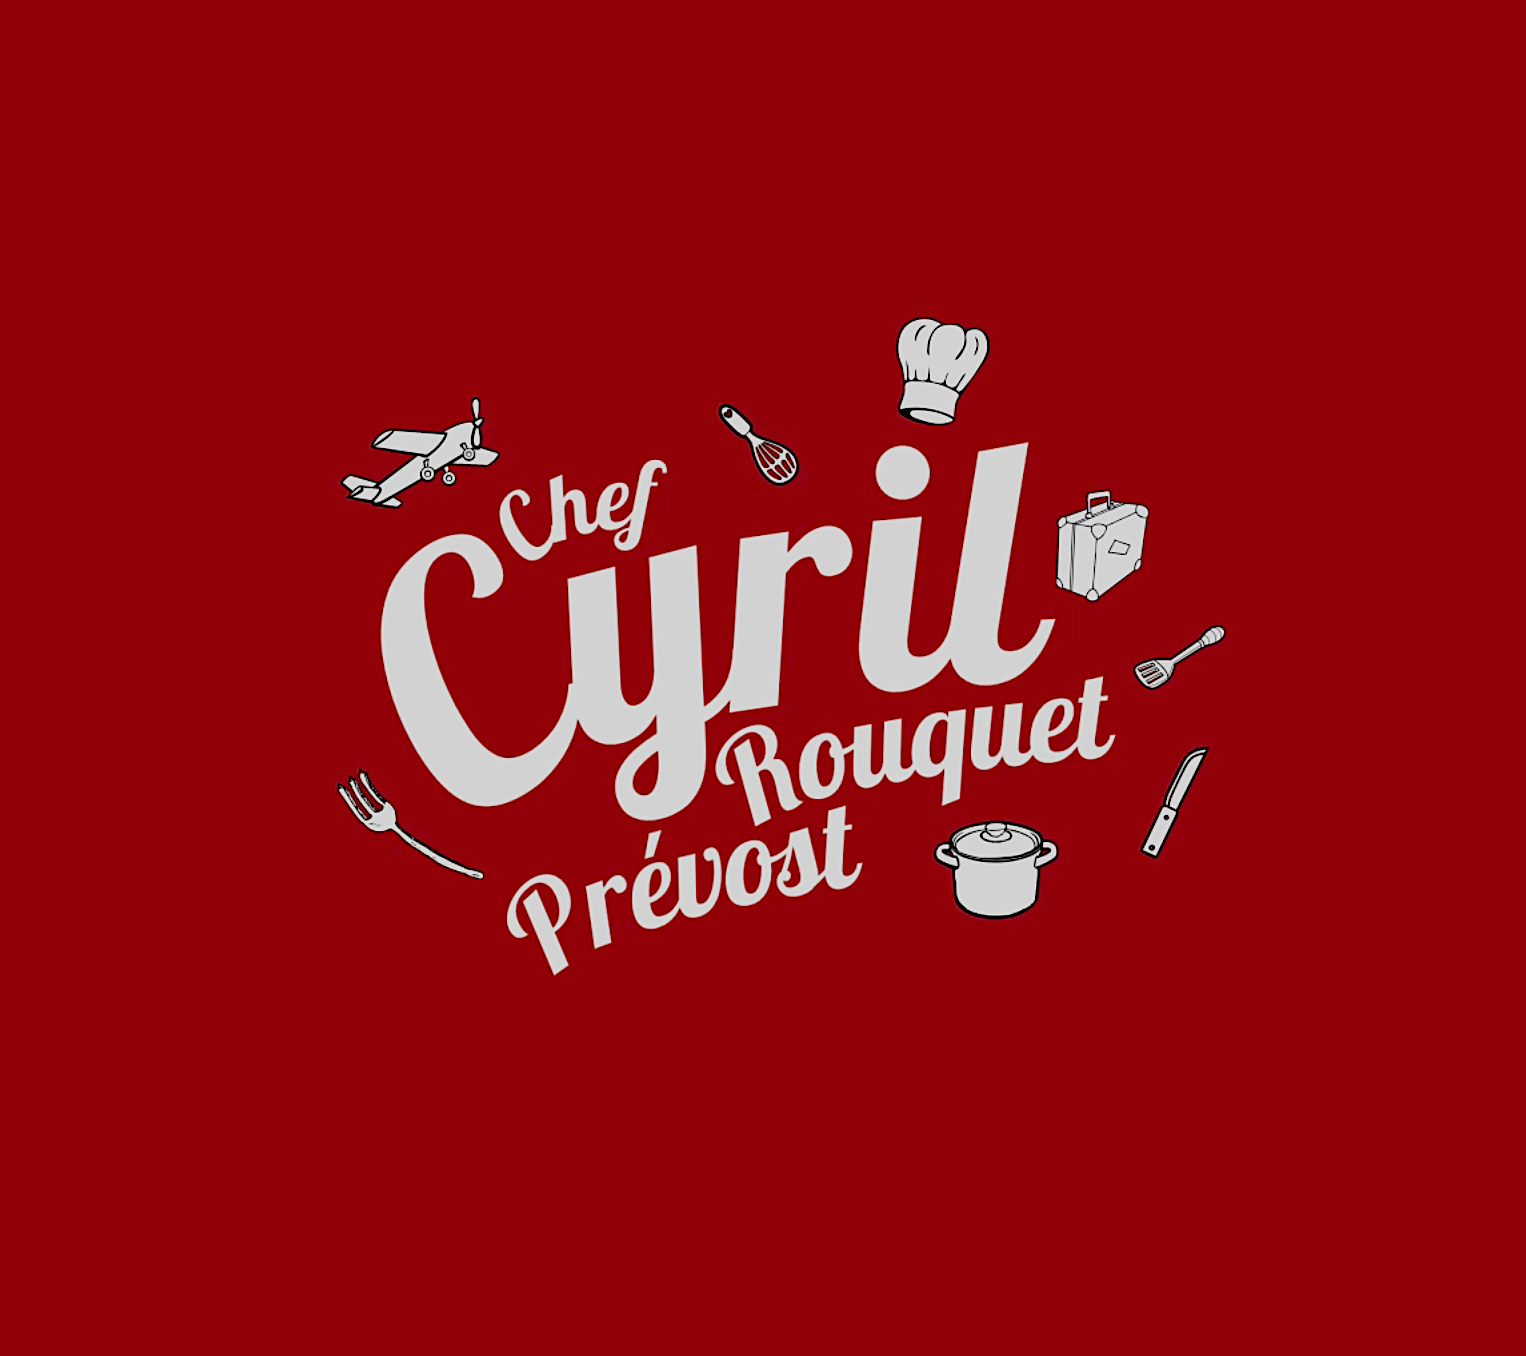 Chef Cyril Roquet-Prévost